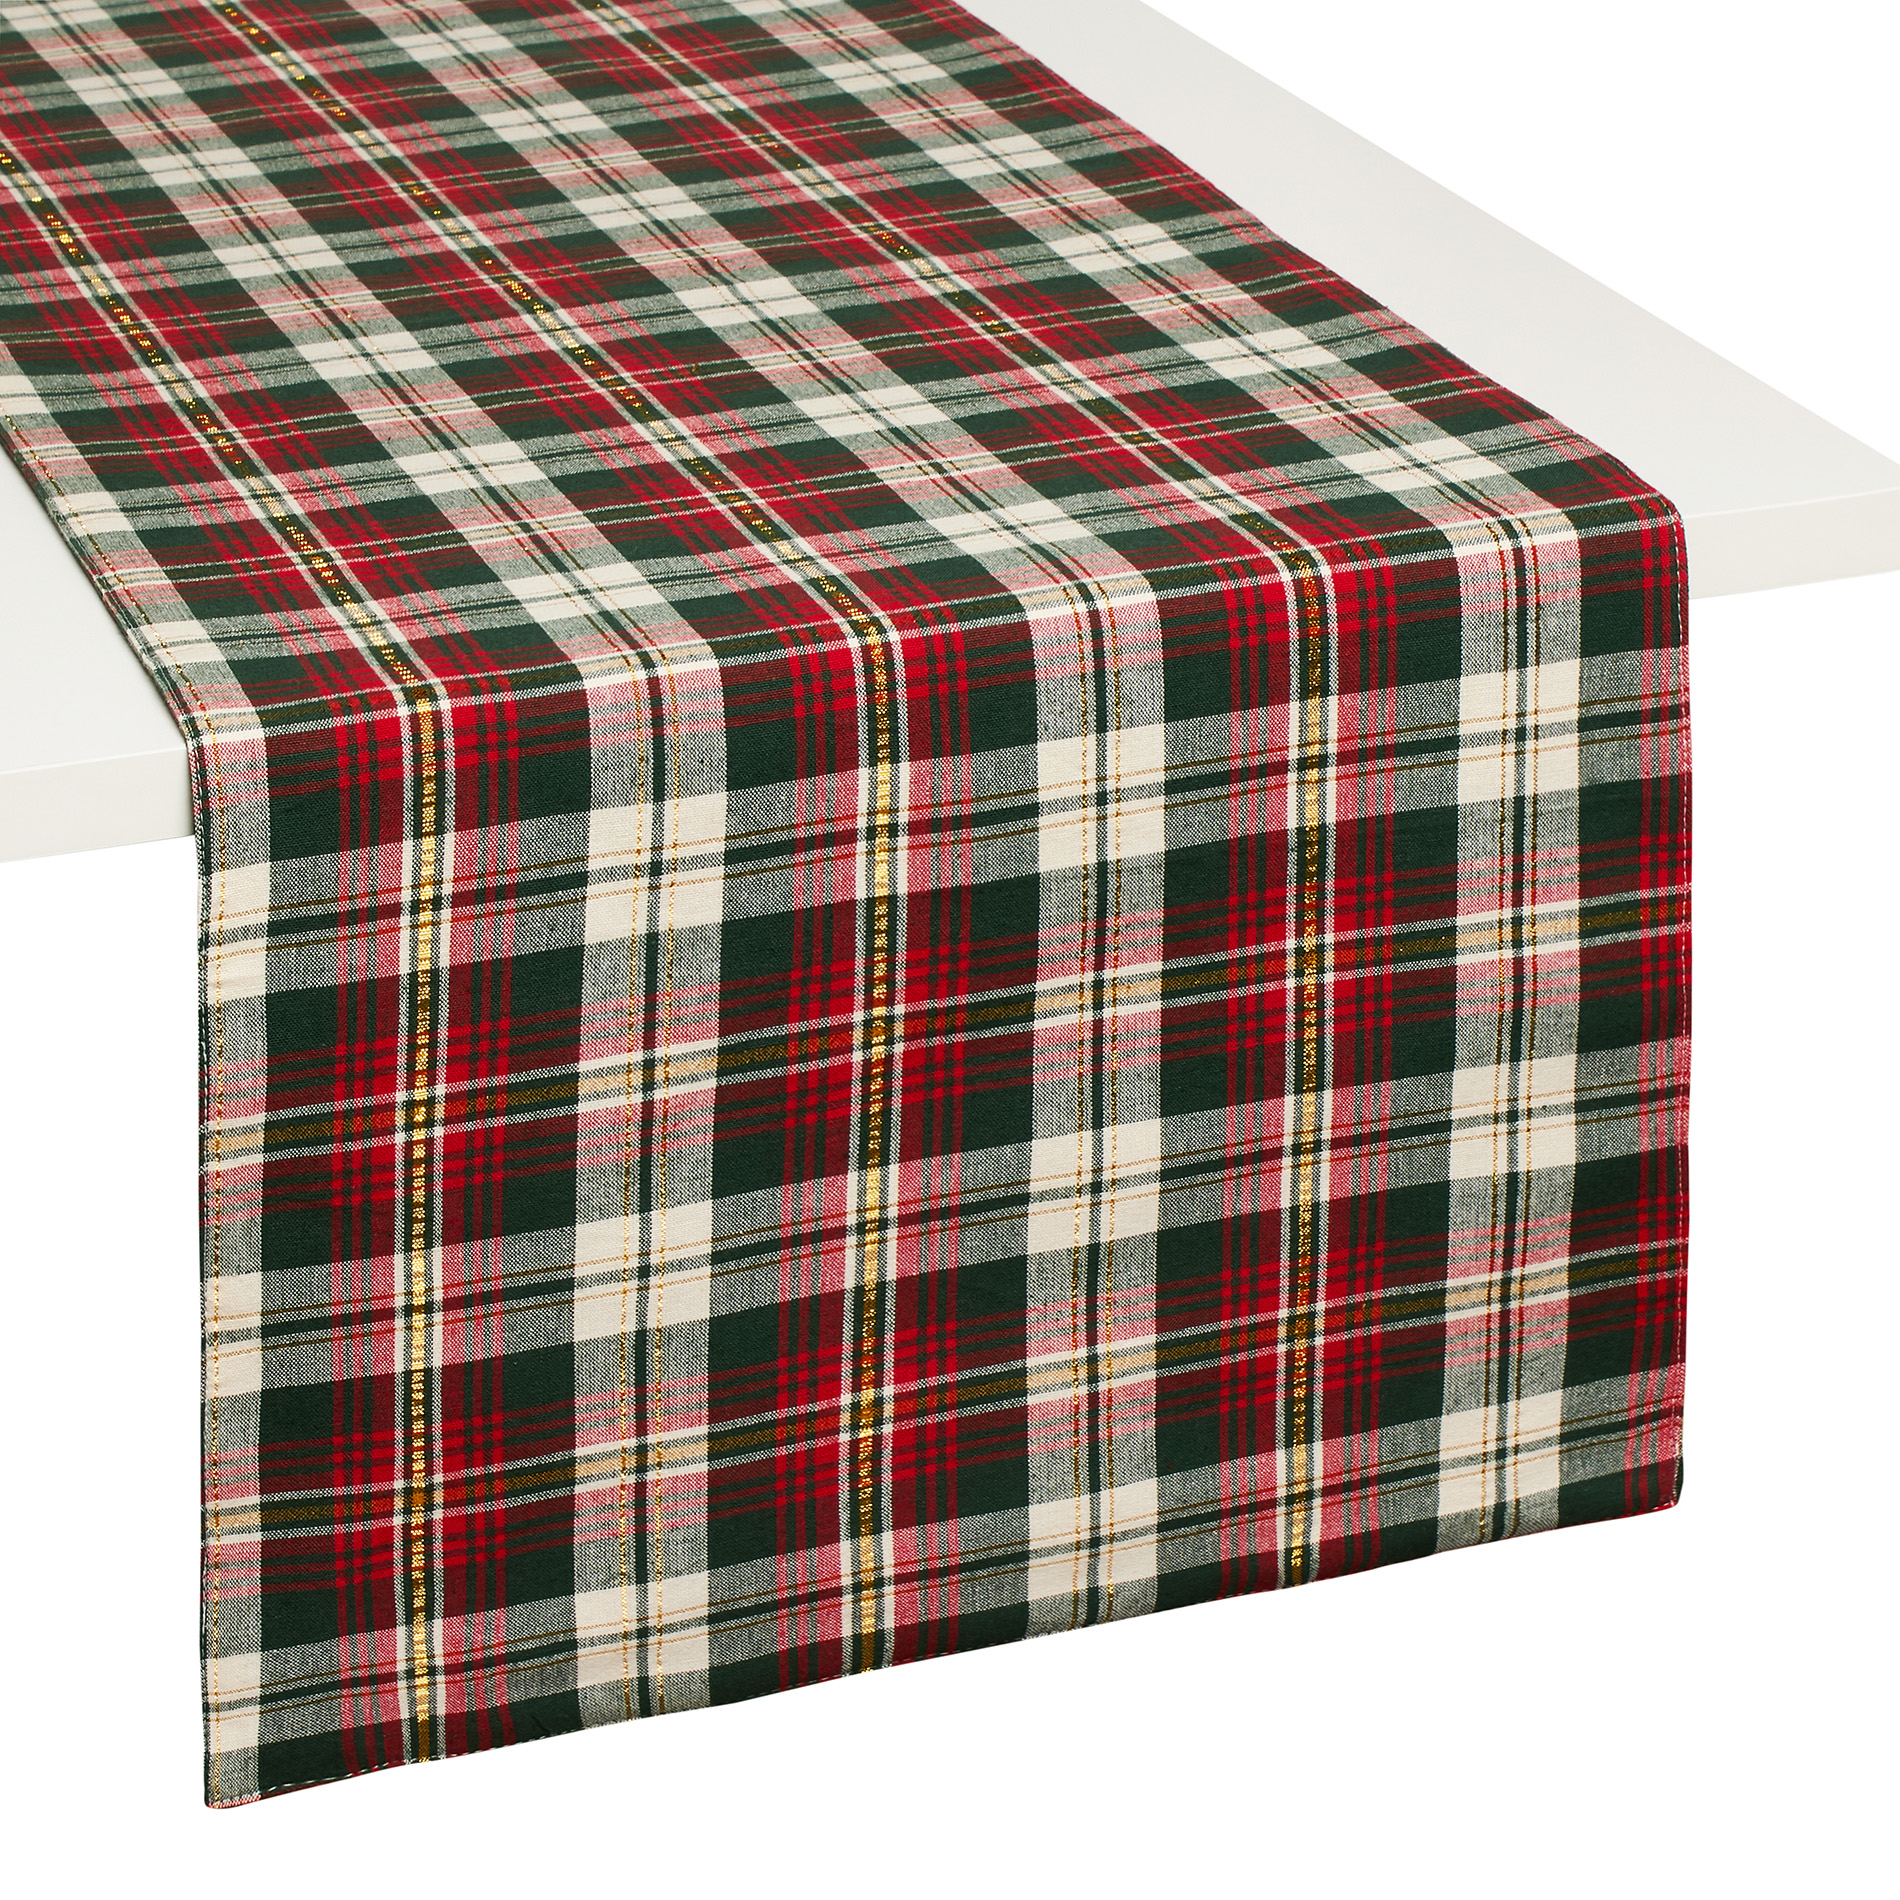 Tartan Table Runner In 100% Yarn Dyed Cotton And Lurex